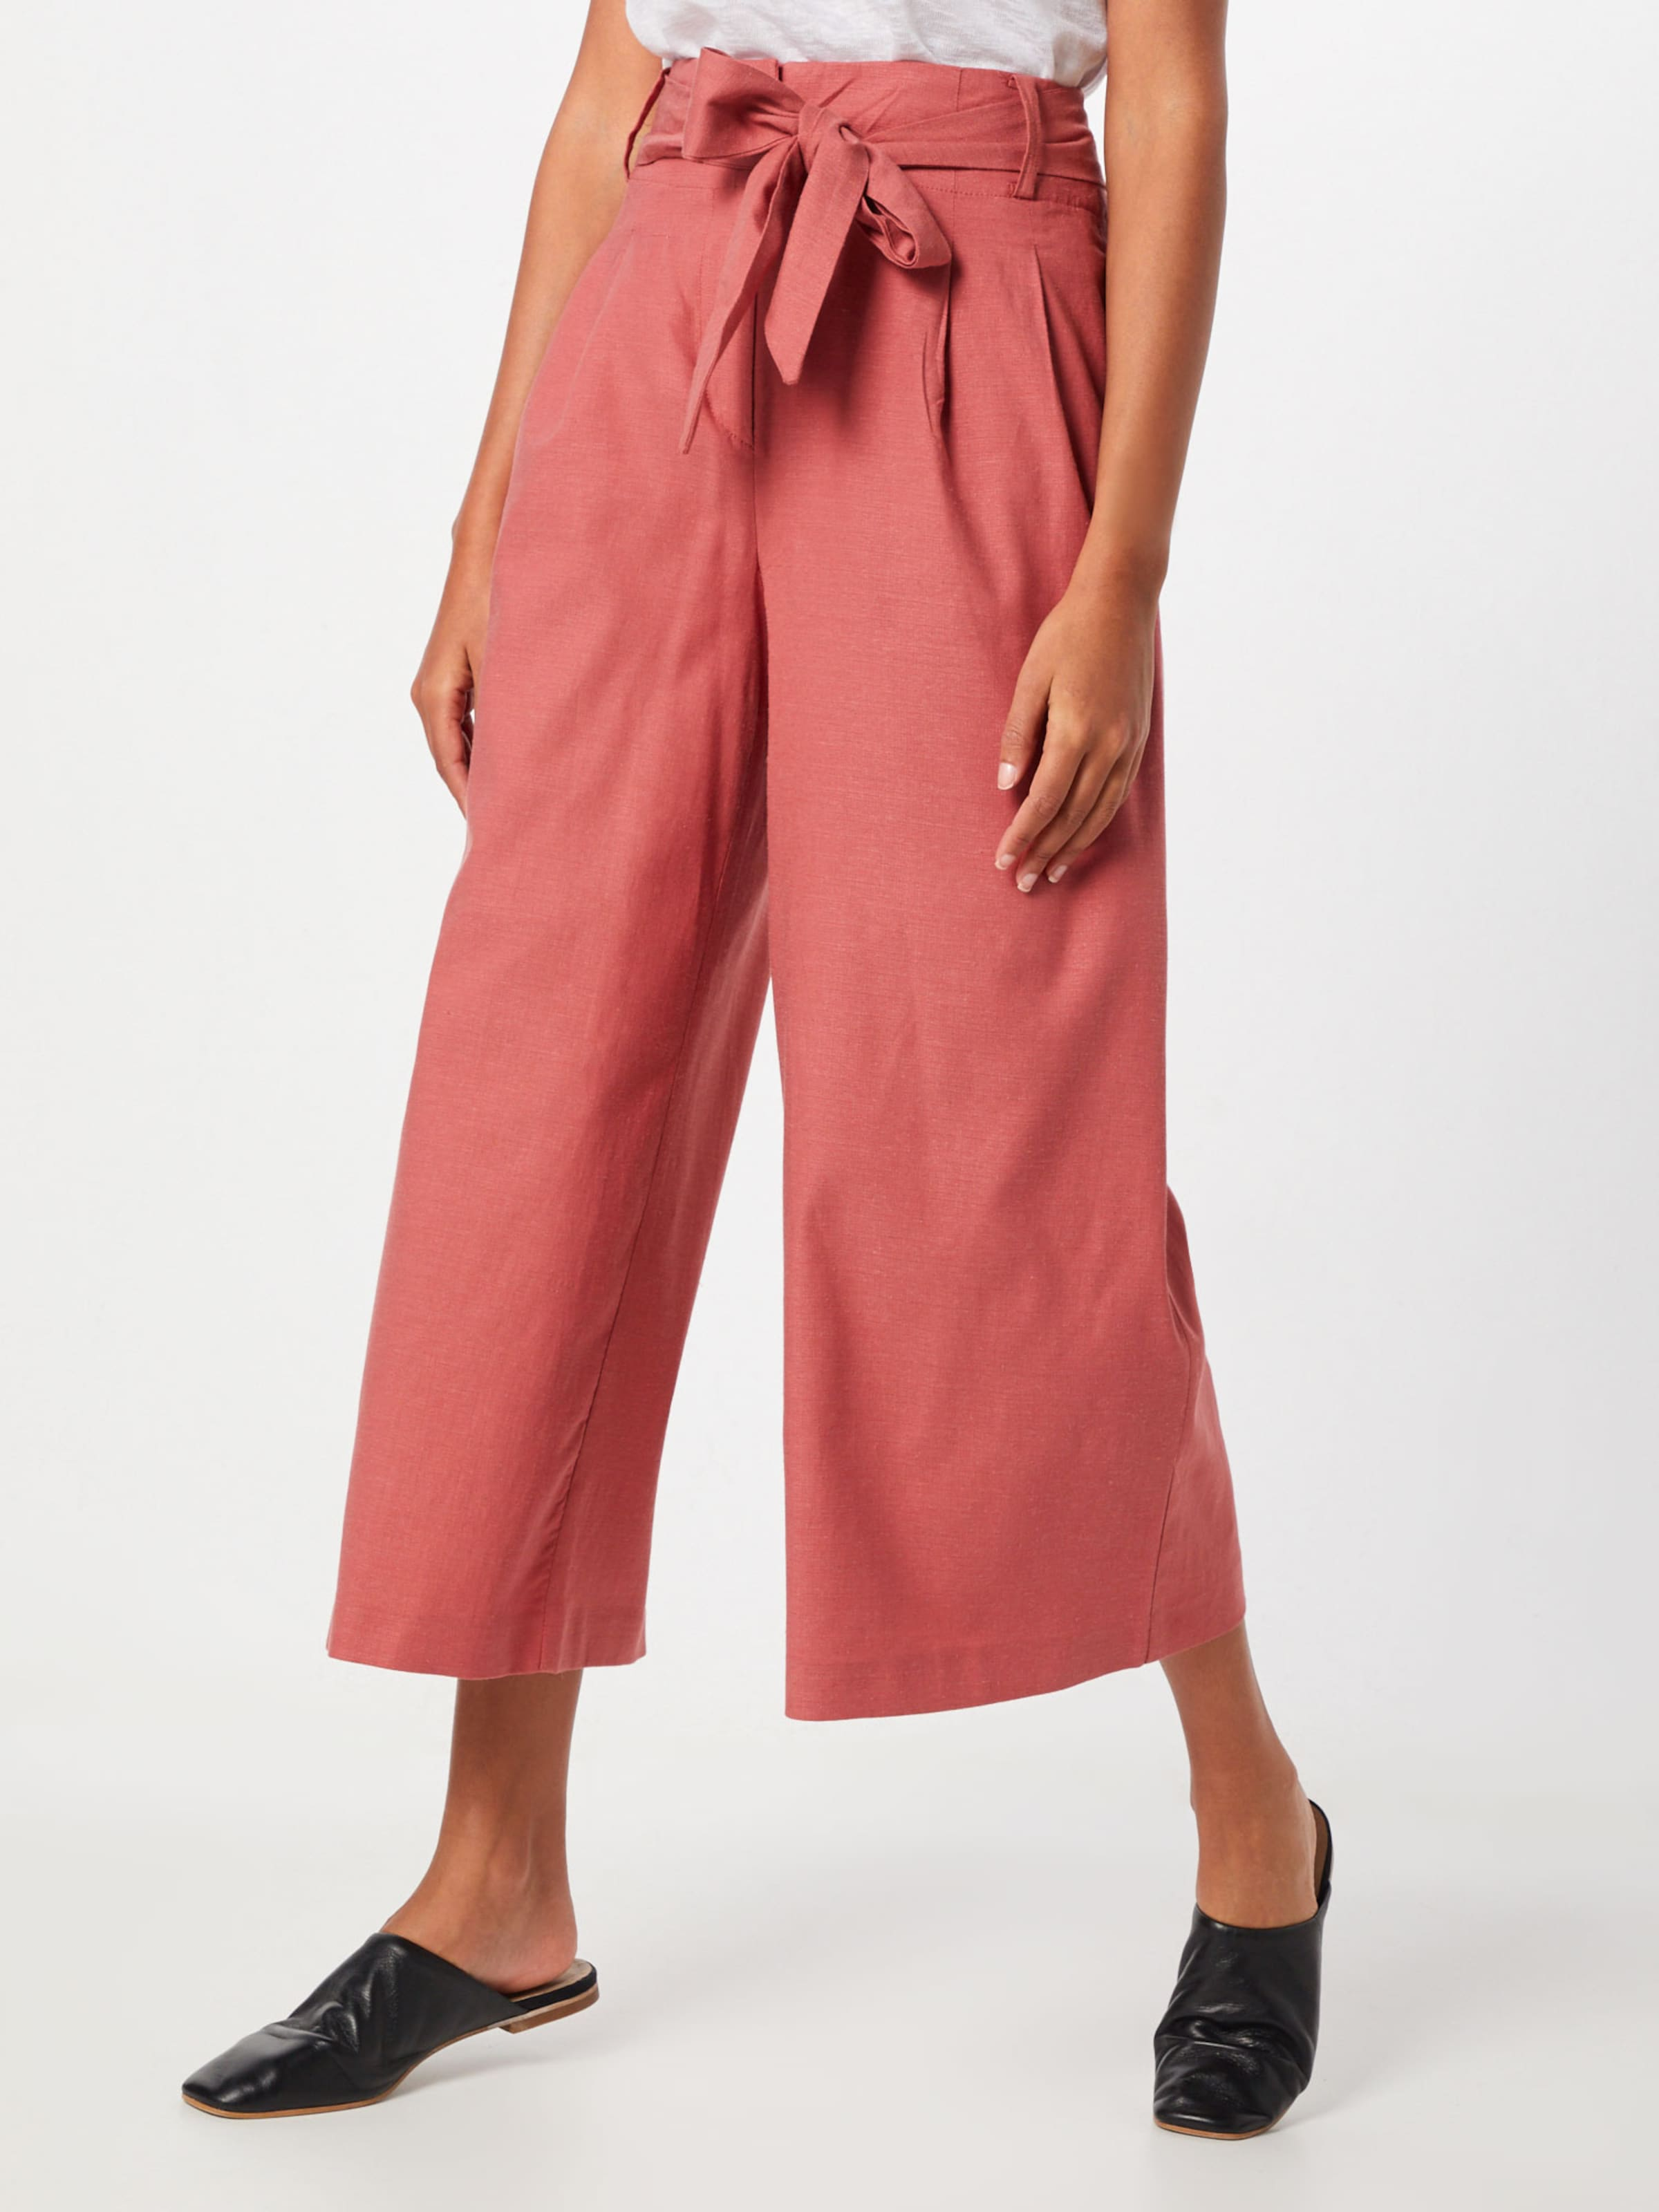 Esprit Collection Culotte In Pitaya In Esprit Collection Culotte WED92HI